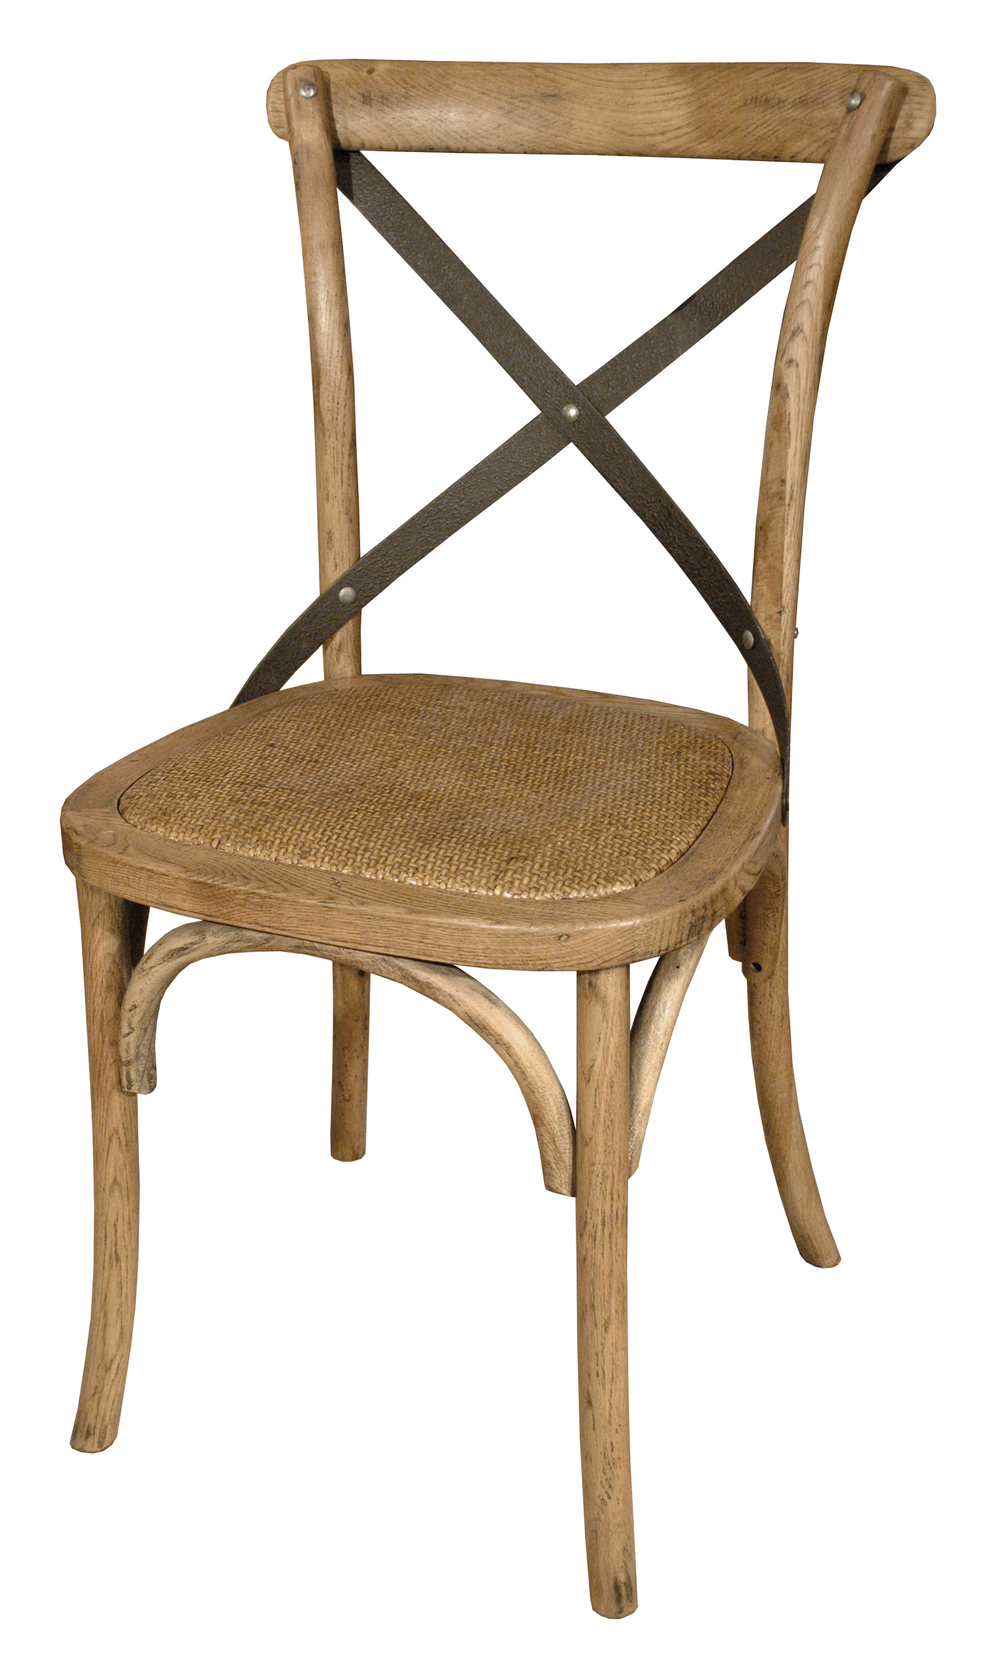 GJ Styles - Cross Chair Natural with Braided Seat